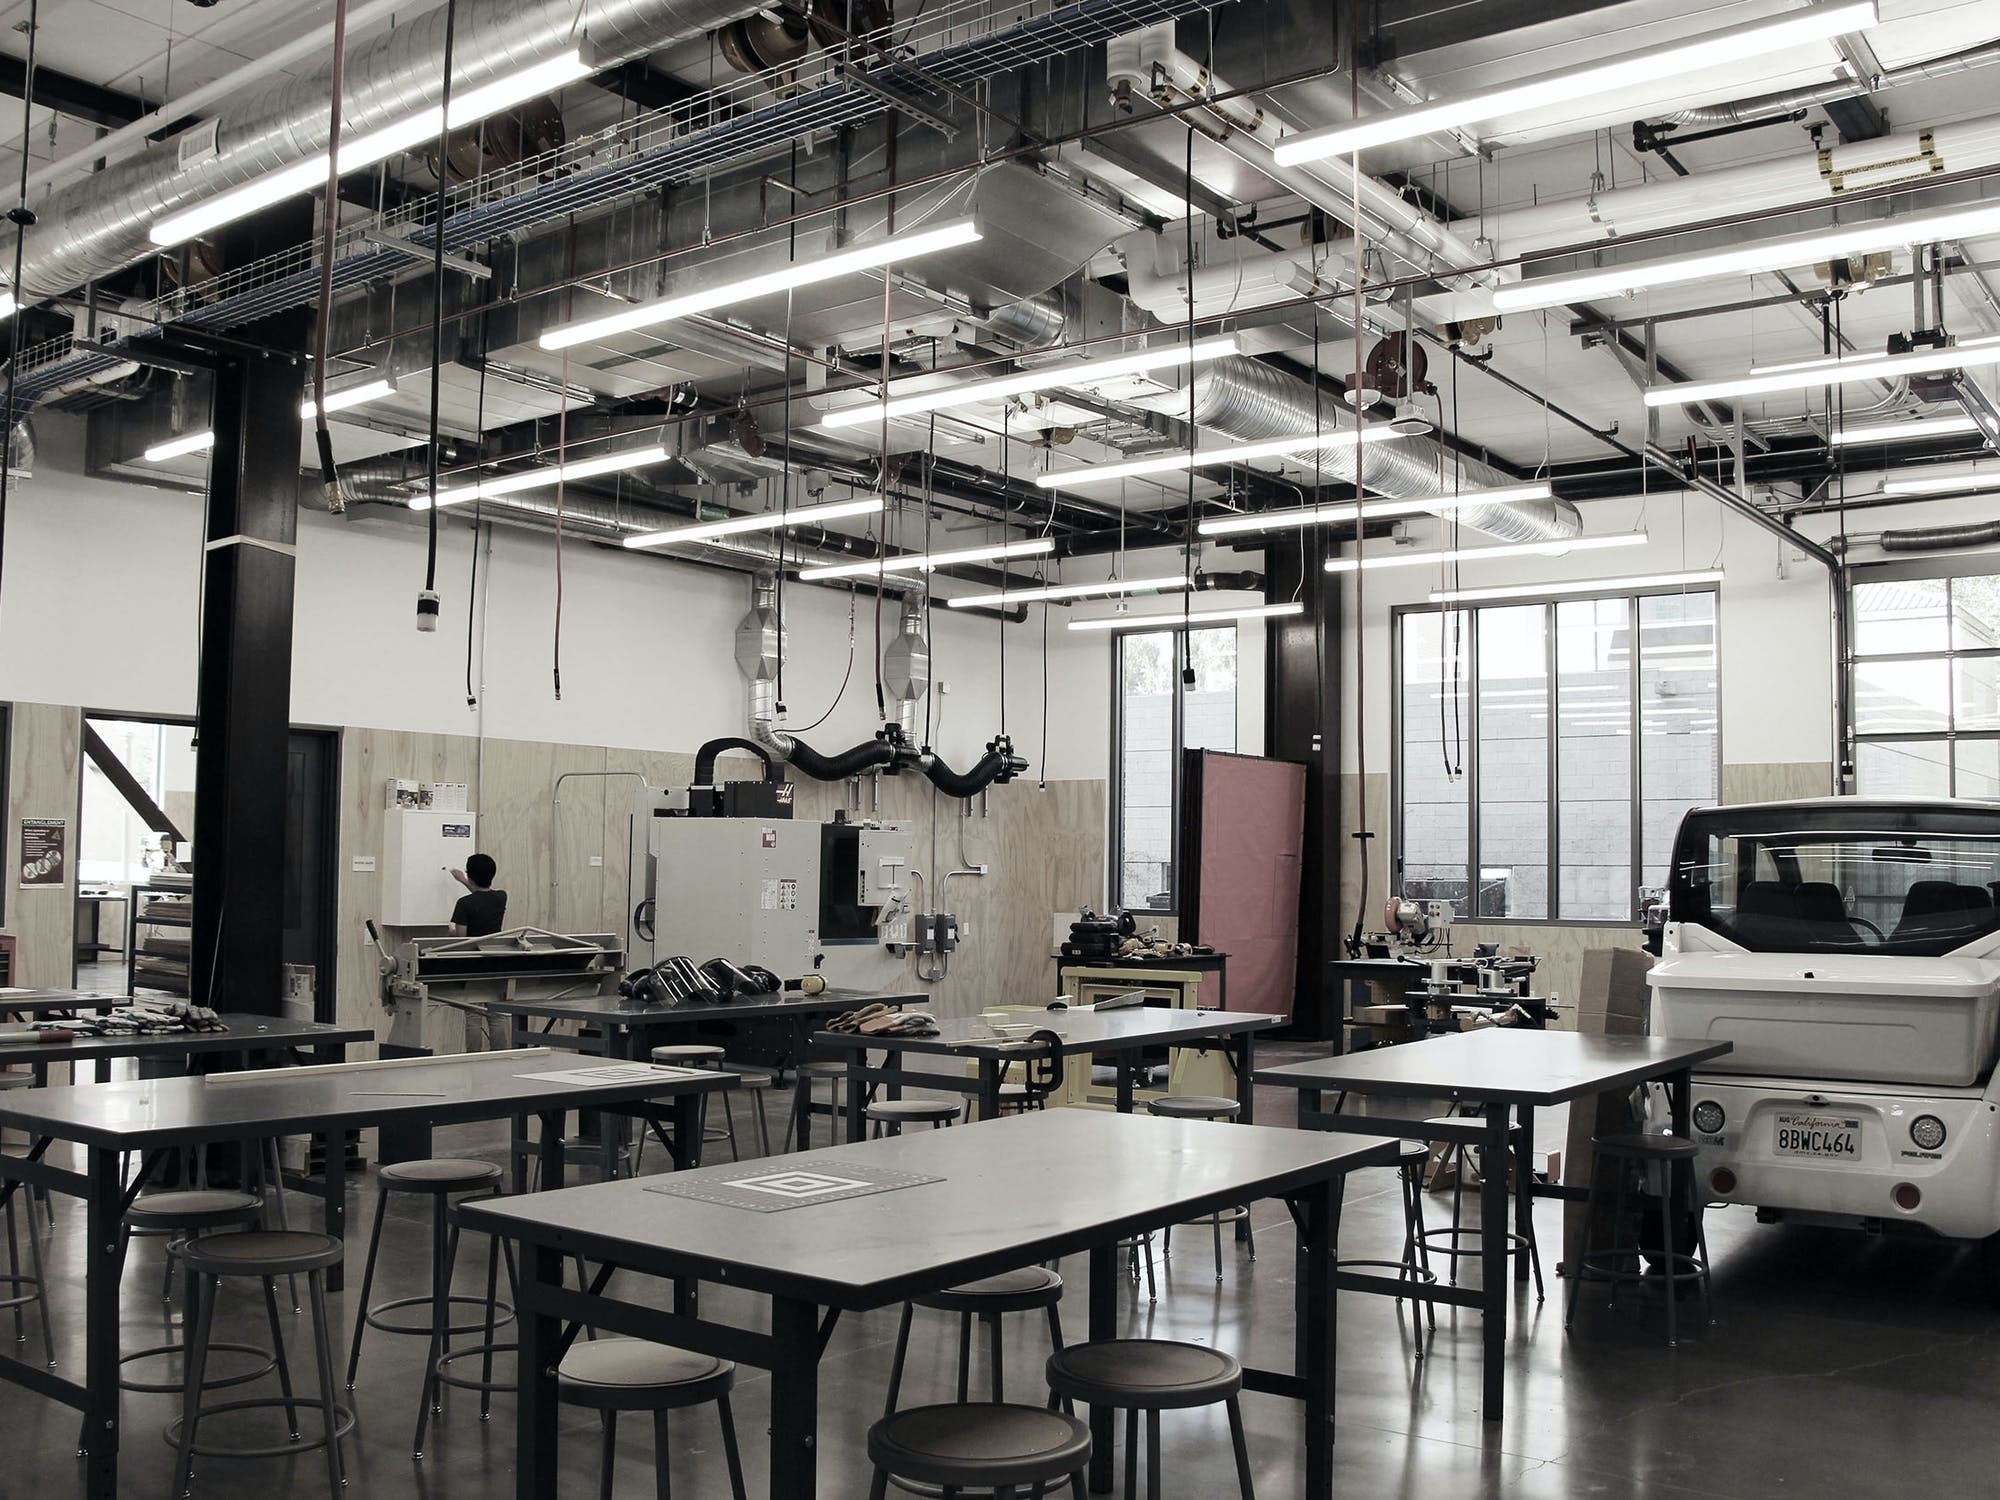 An empty industrial makerspace